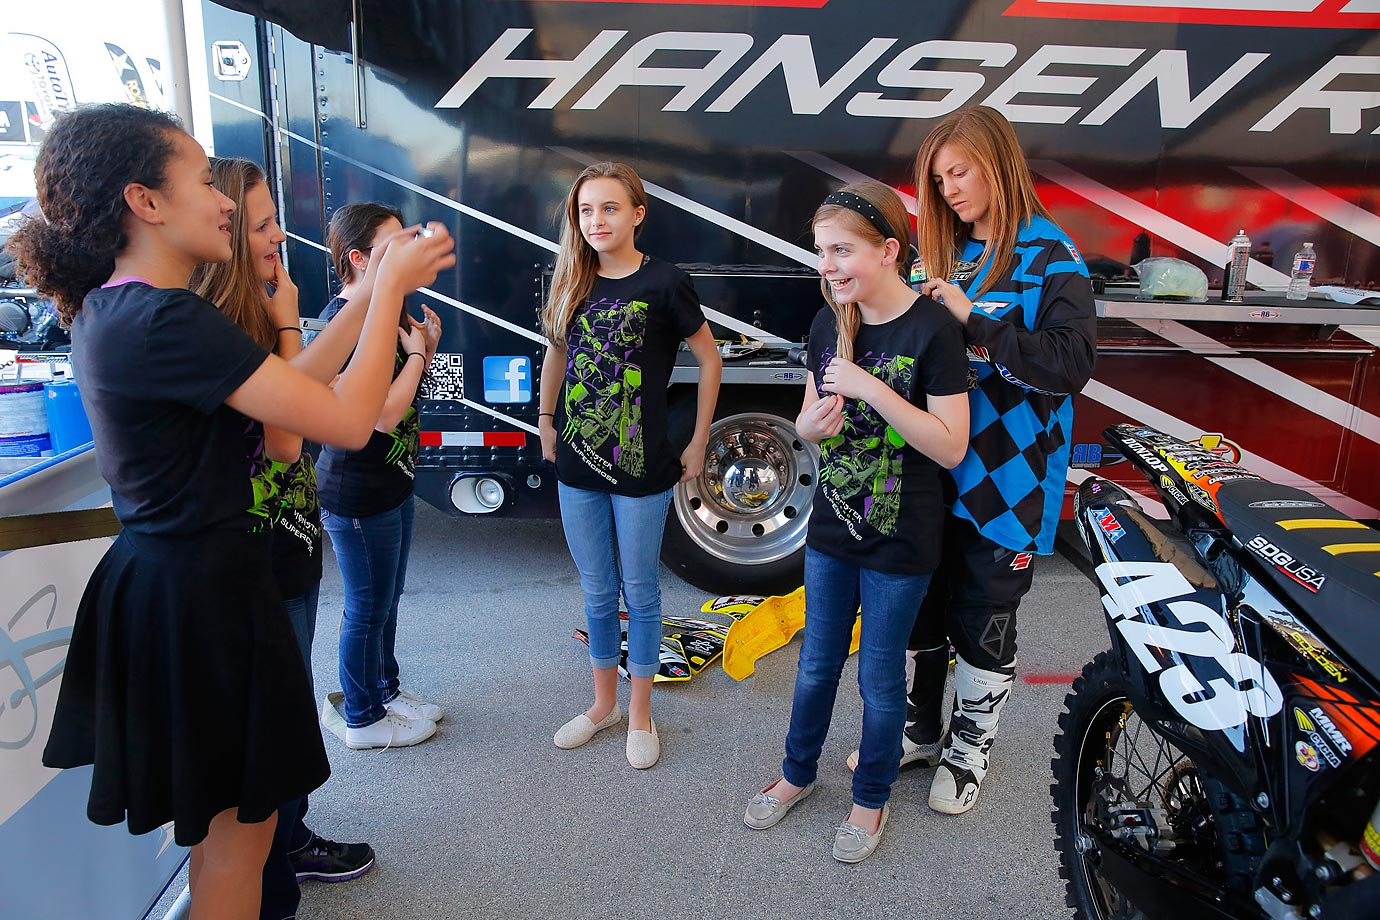 Golden signs some autographs for a local group of fans at her pit area trailer.